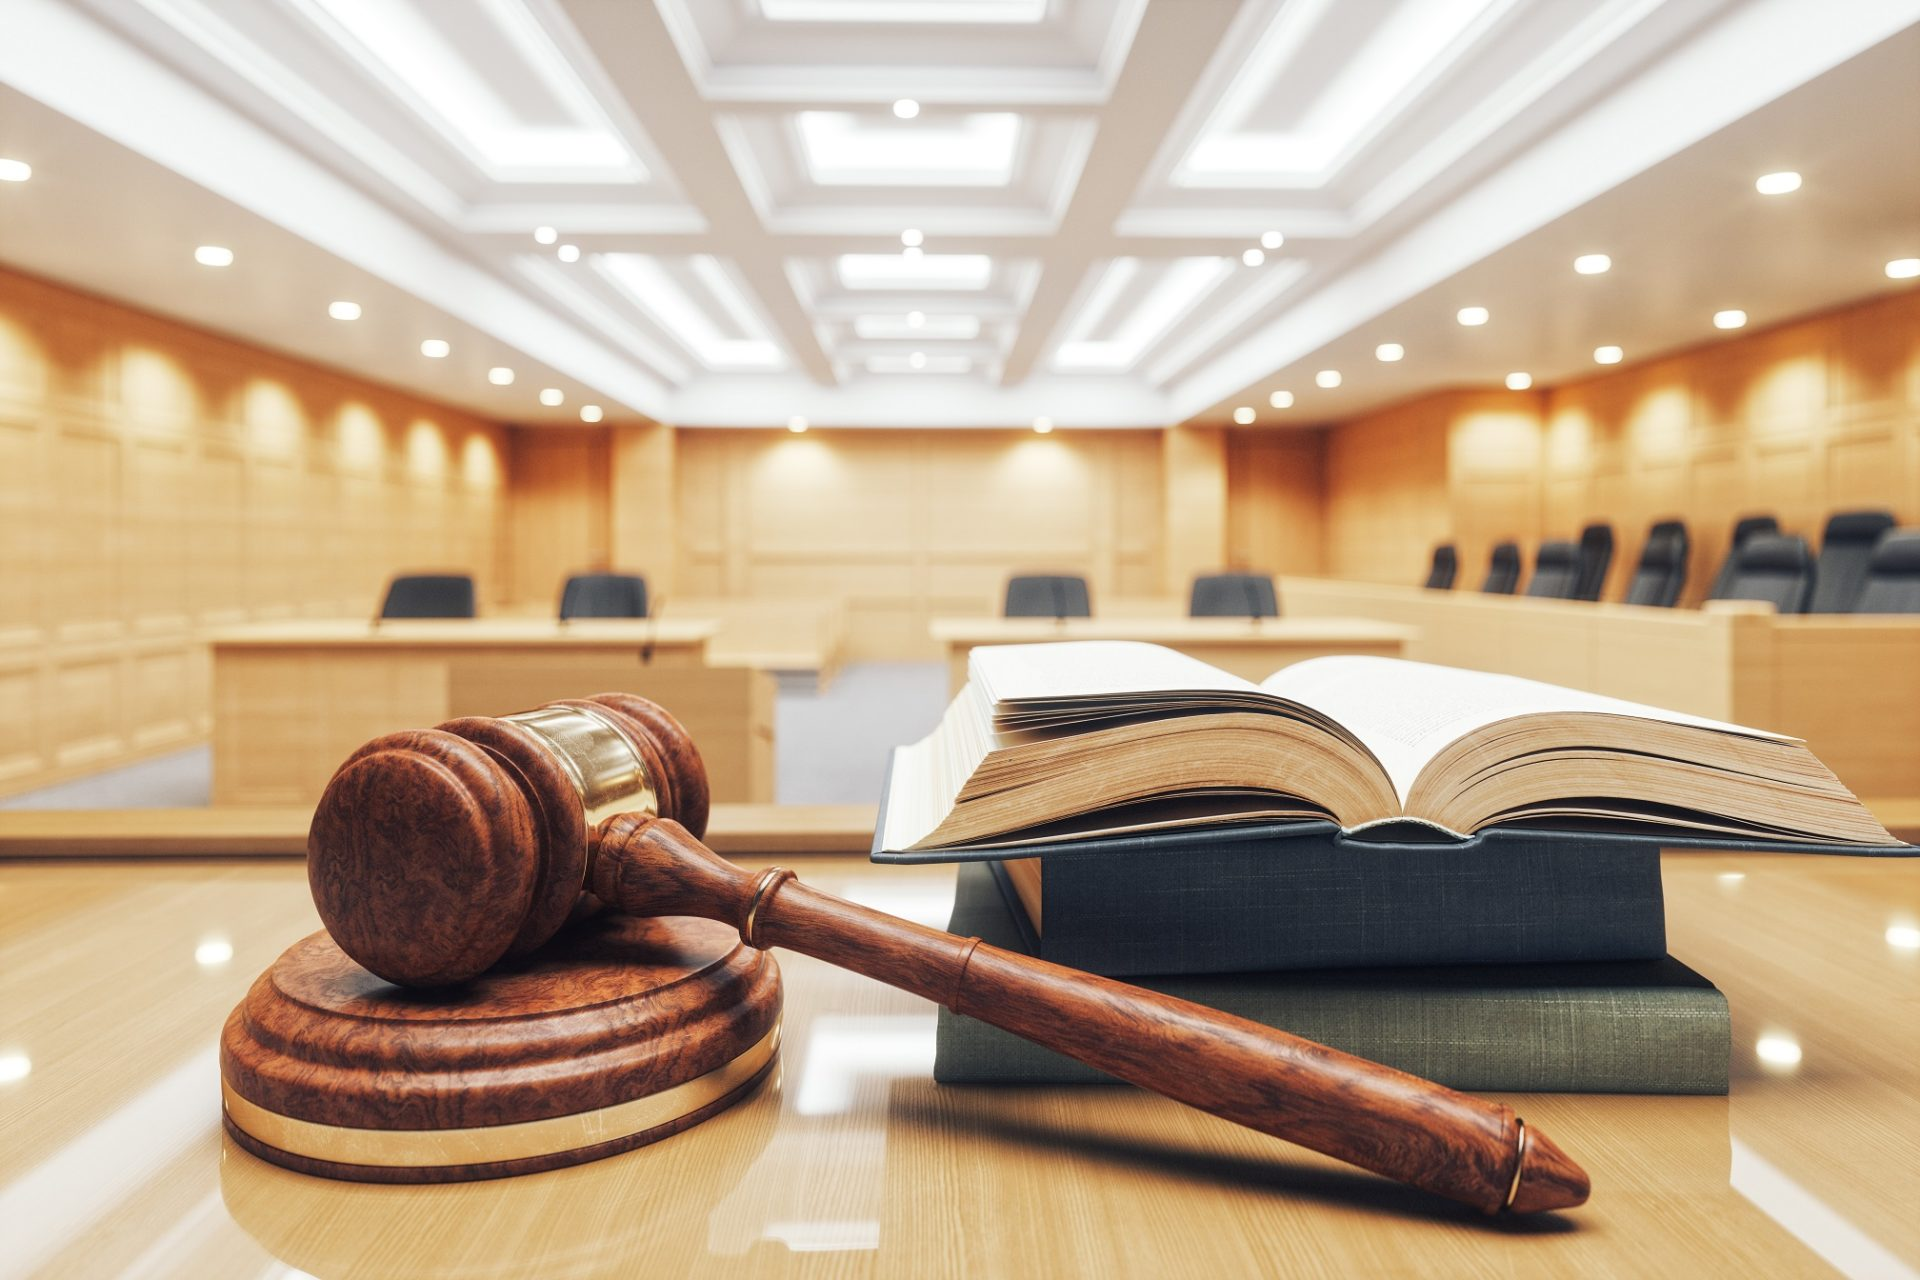 Courtroom, Gavel And Law Books